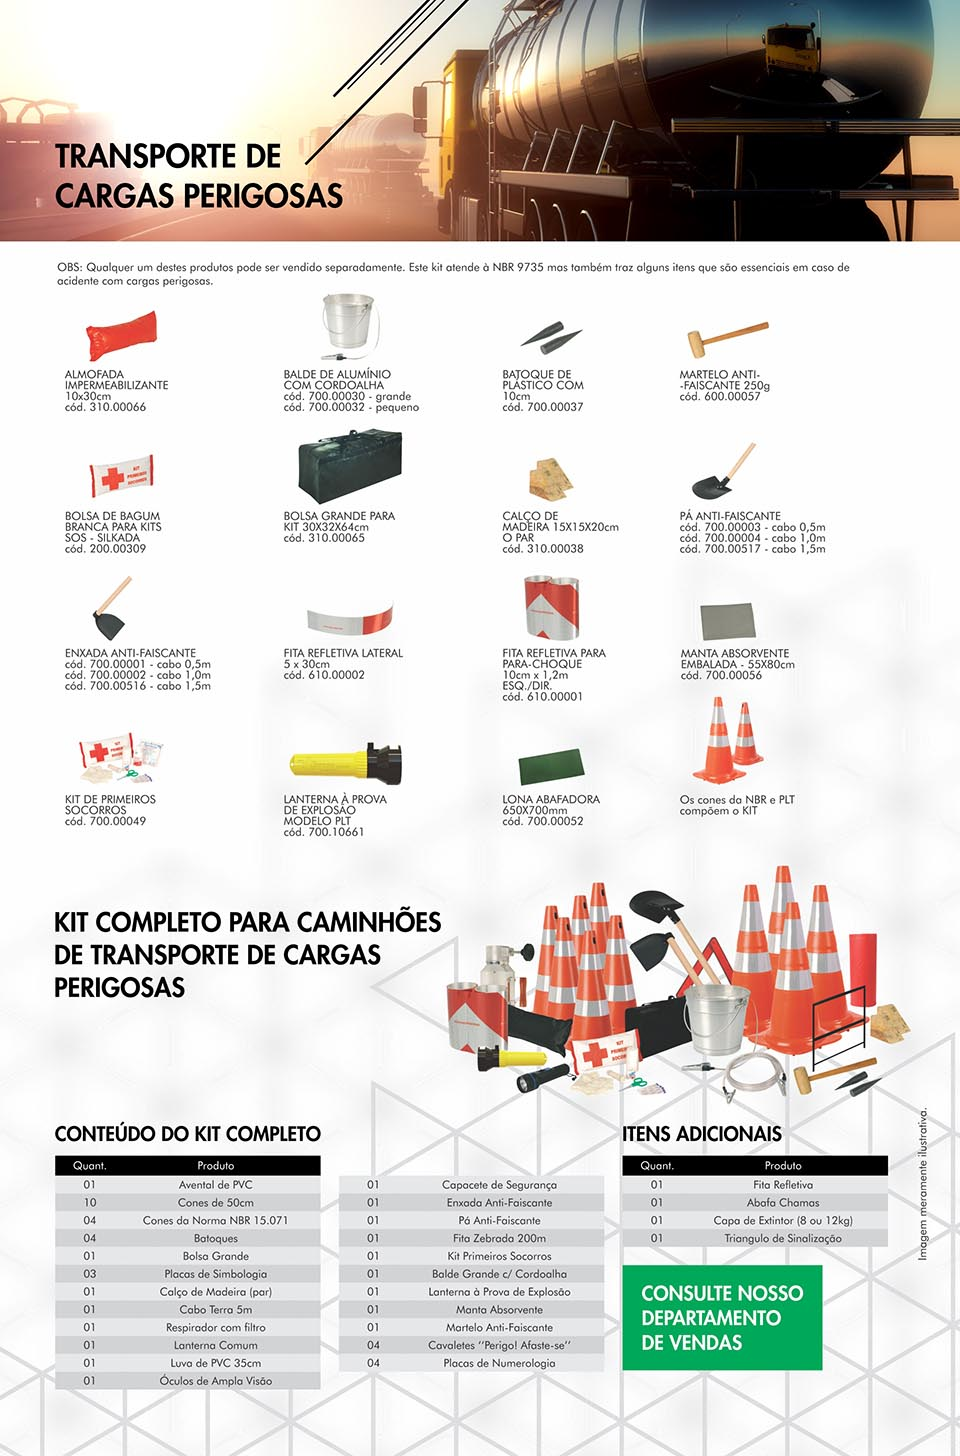 Plastcor do Brasil - KIT CARGAS PERIGOSAS 79e0fd46f0